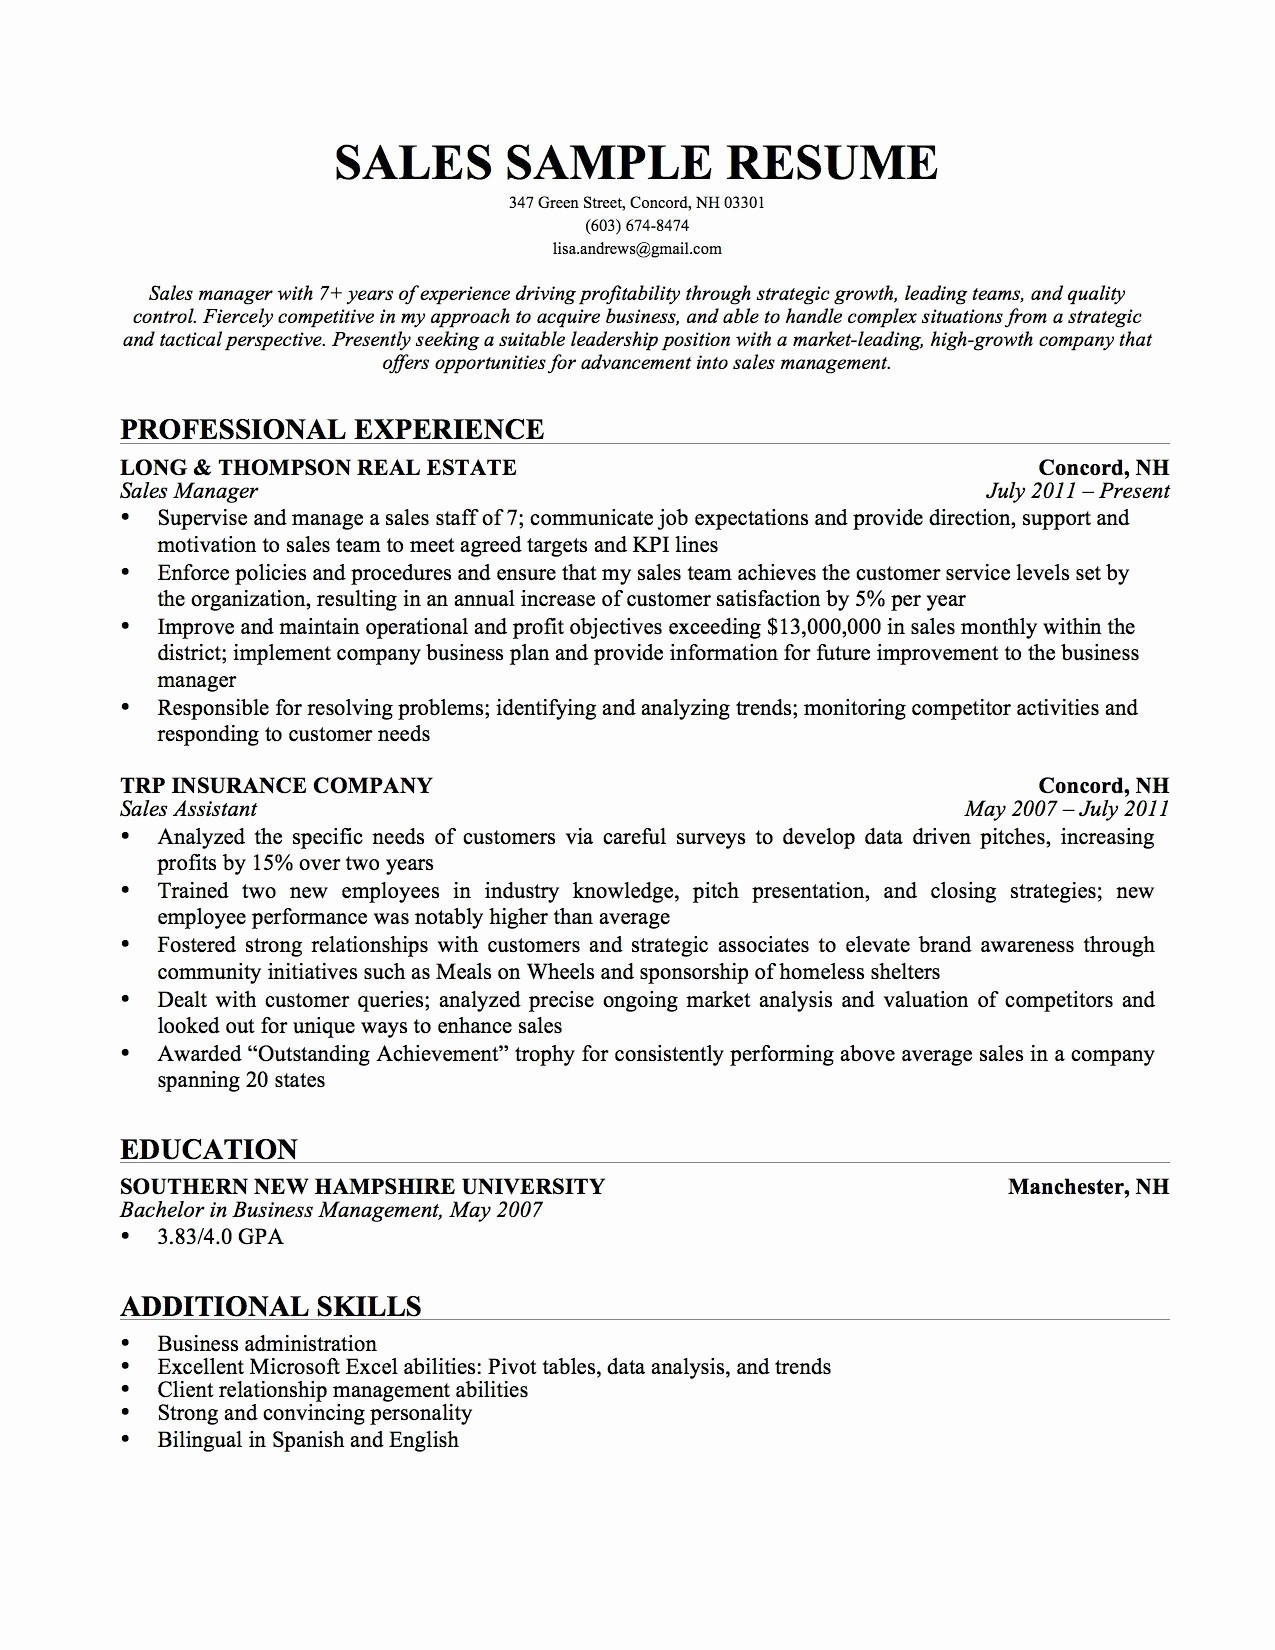 Data Analytics Resume - Skills Based Resume Inspirational Elegant Skills for A Resume